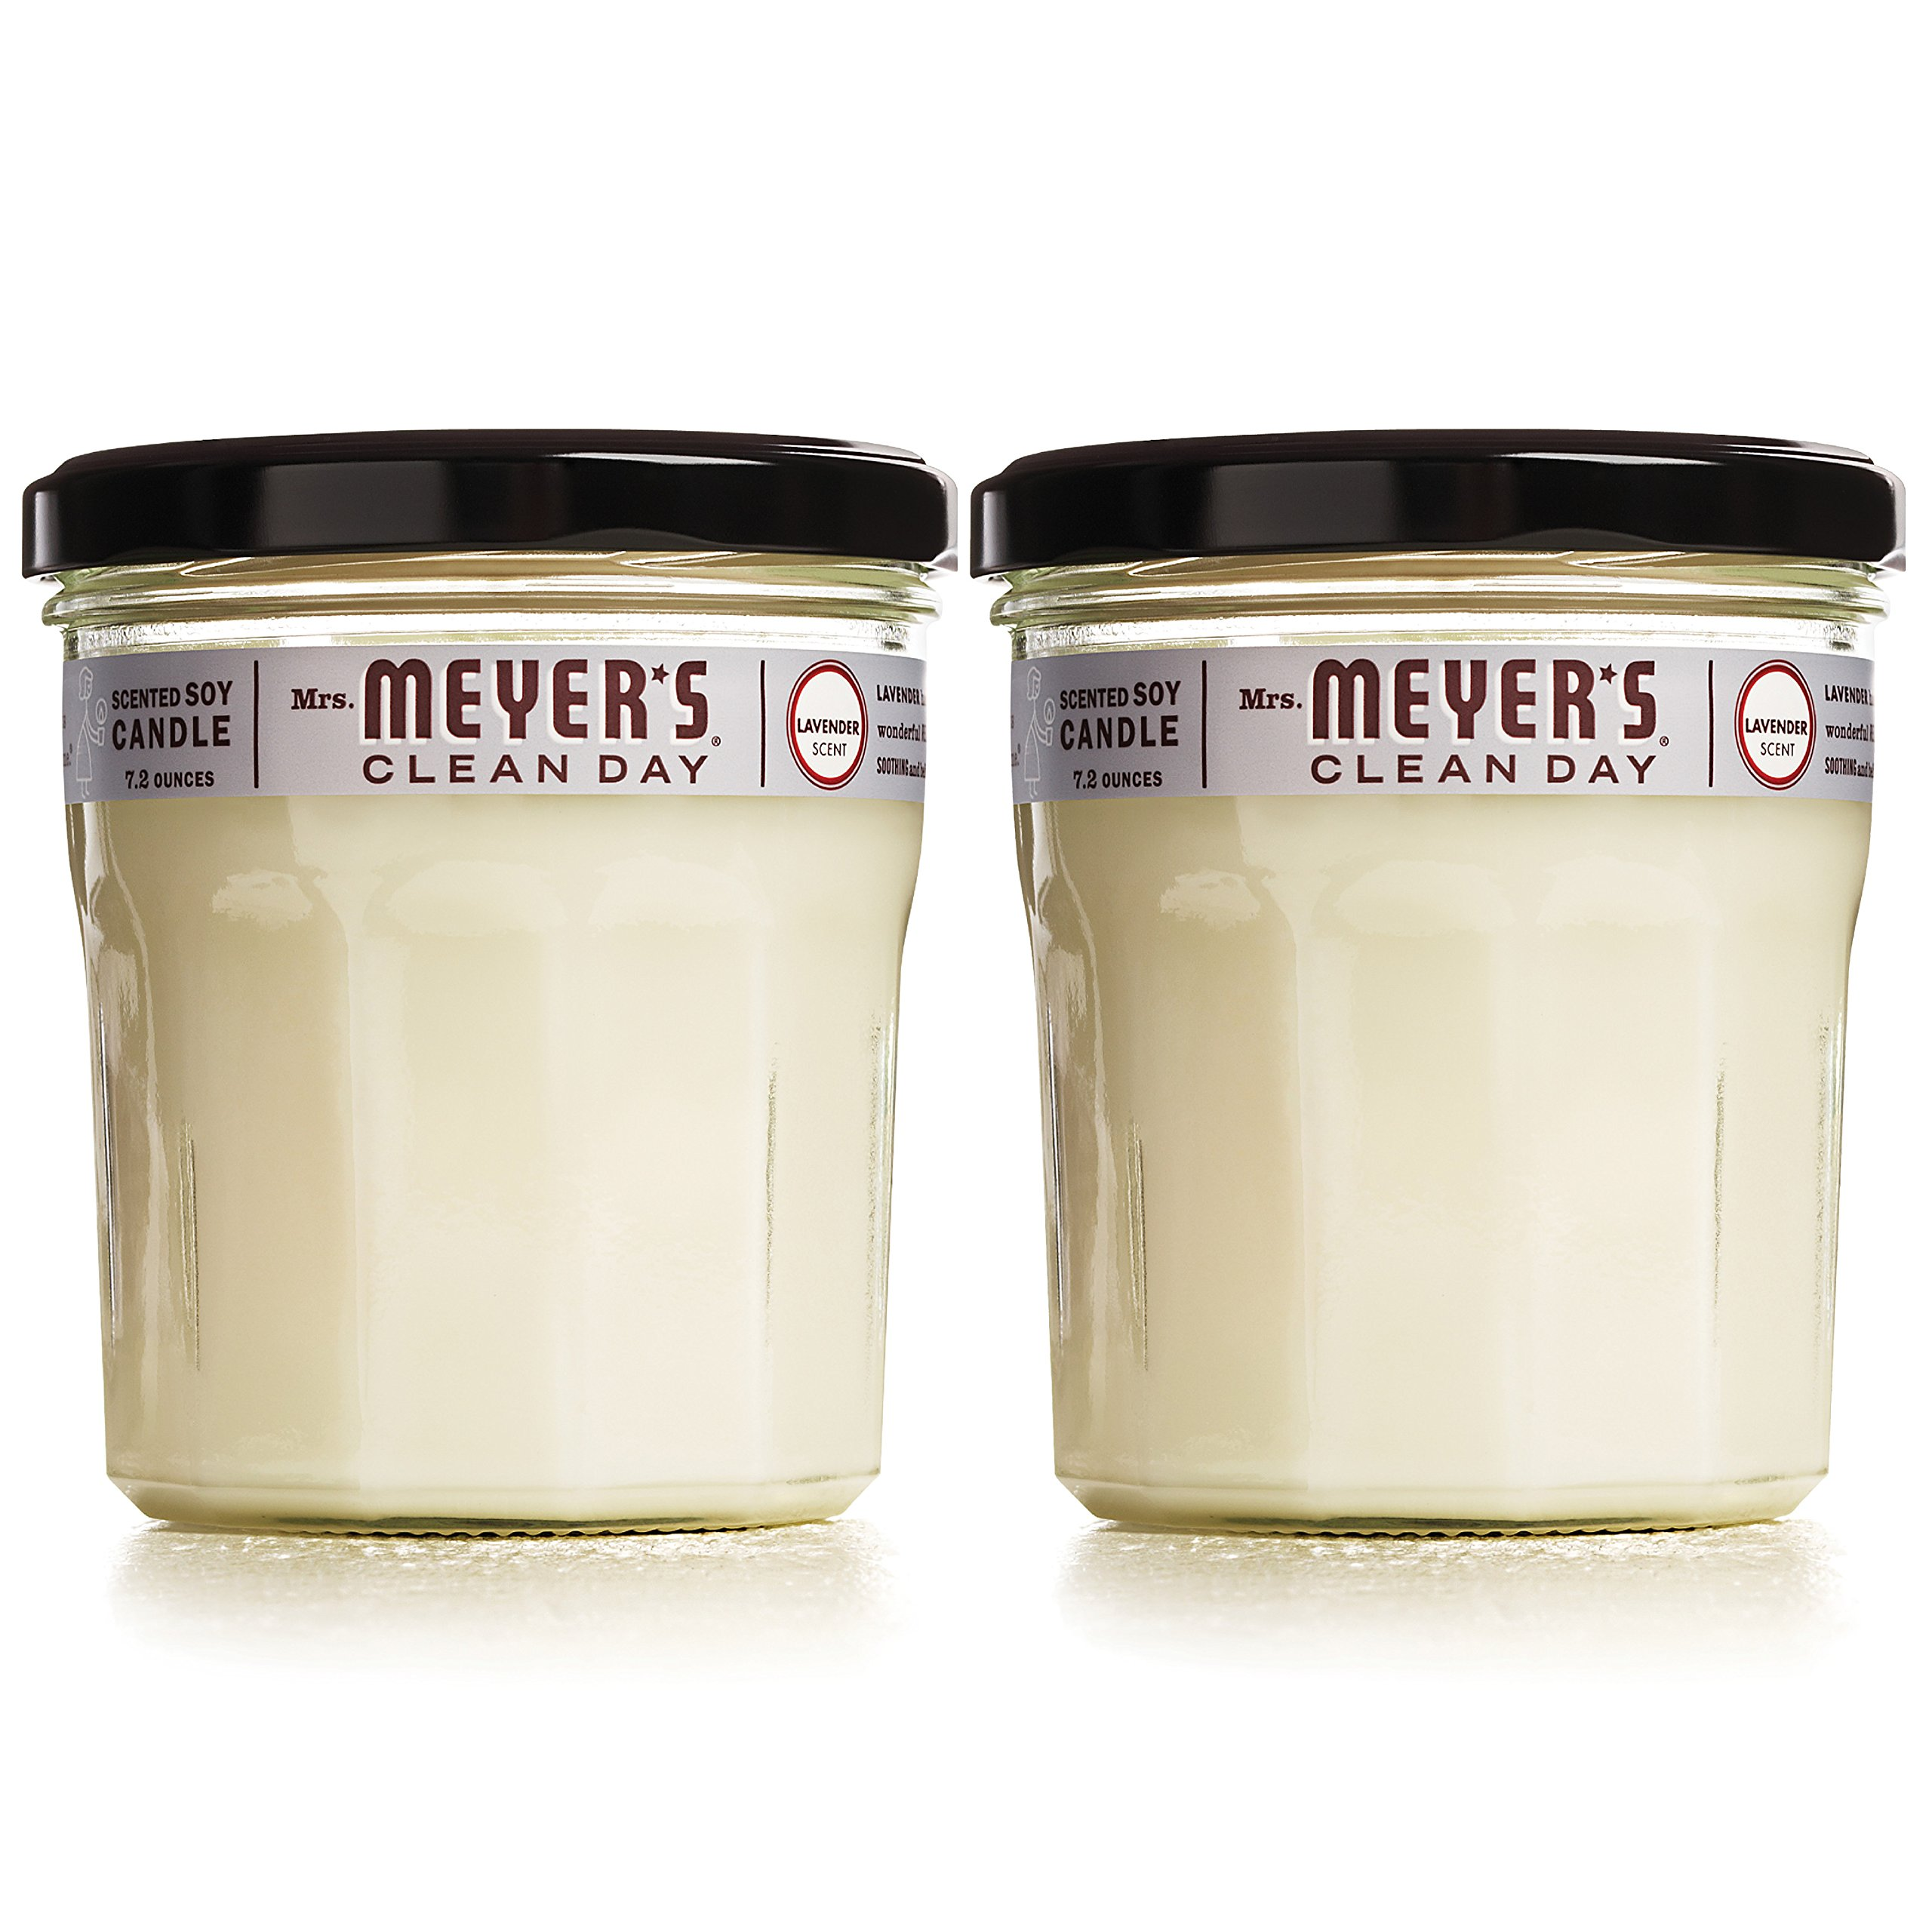 Mrs. Meyer's Clean Day Scented Soy Candle, Large Glass, Lavender, 7.2 oz, (Pack of 2) by Mrs. Meyers